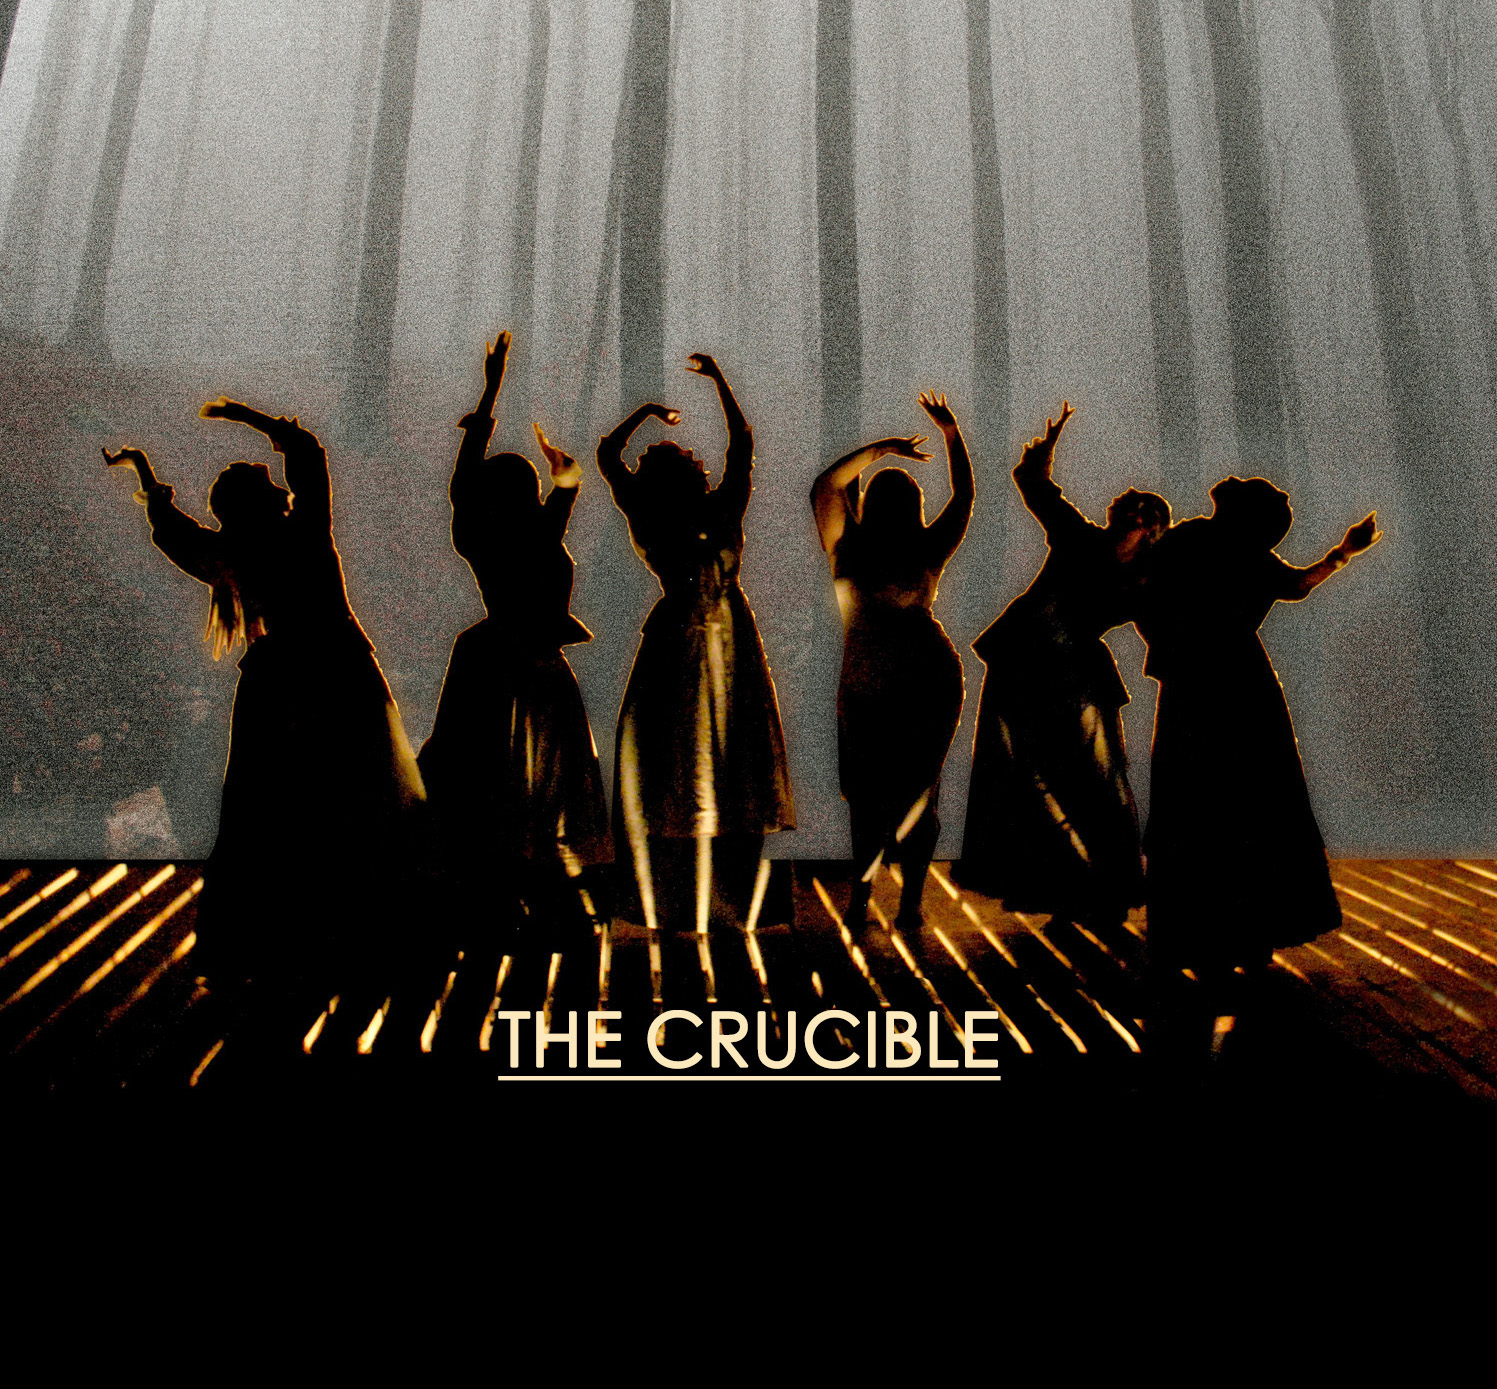 http://www.peakradar.com/wp-content/uploads/sites/www.peakradar.com/images/2017/02/primary-The-Crucible-by-Arthur-Miller-1487115988.jpeg